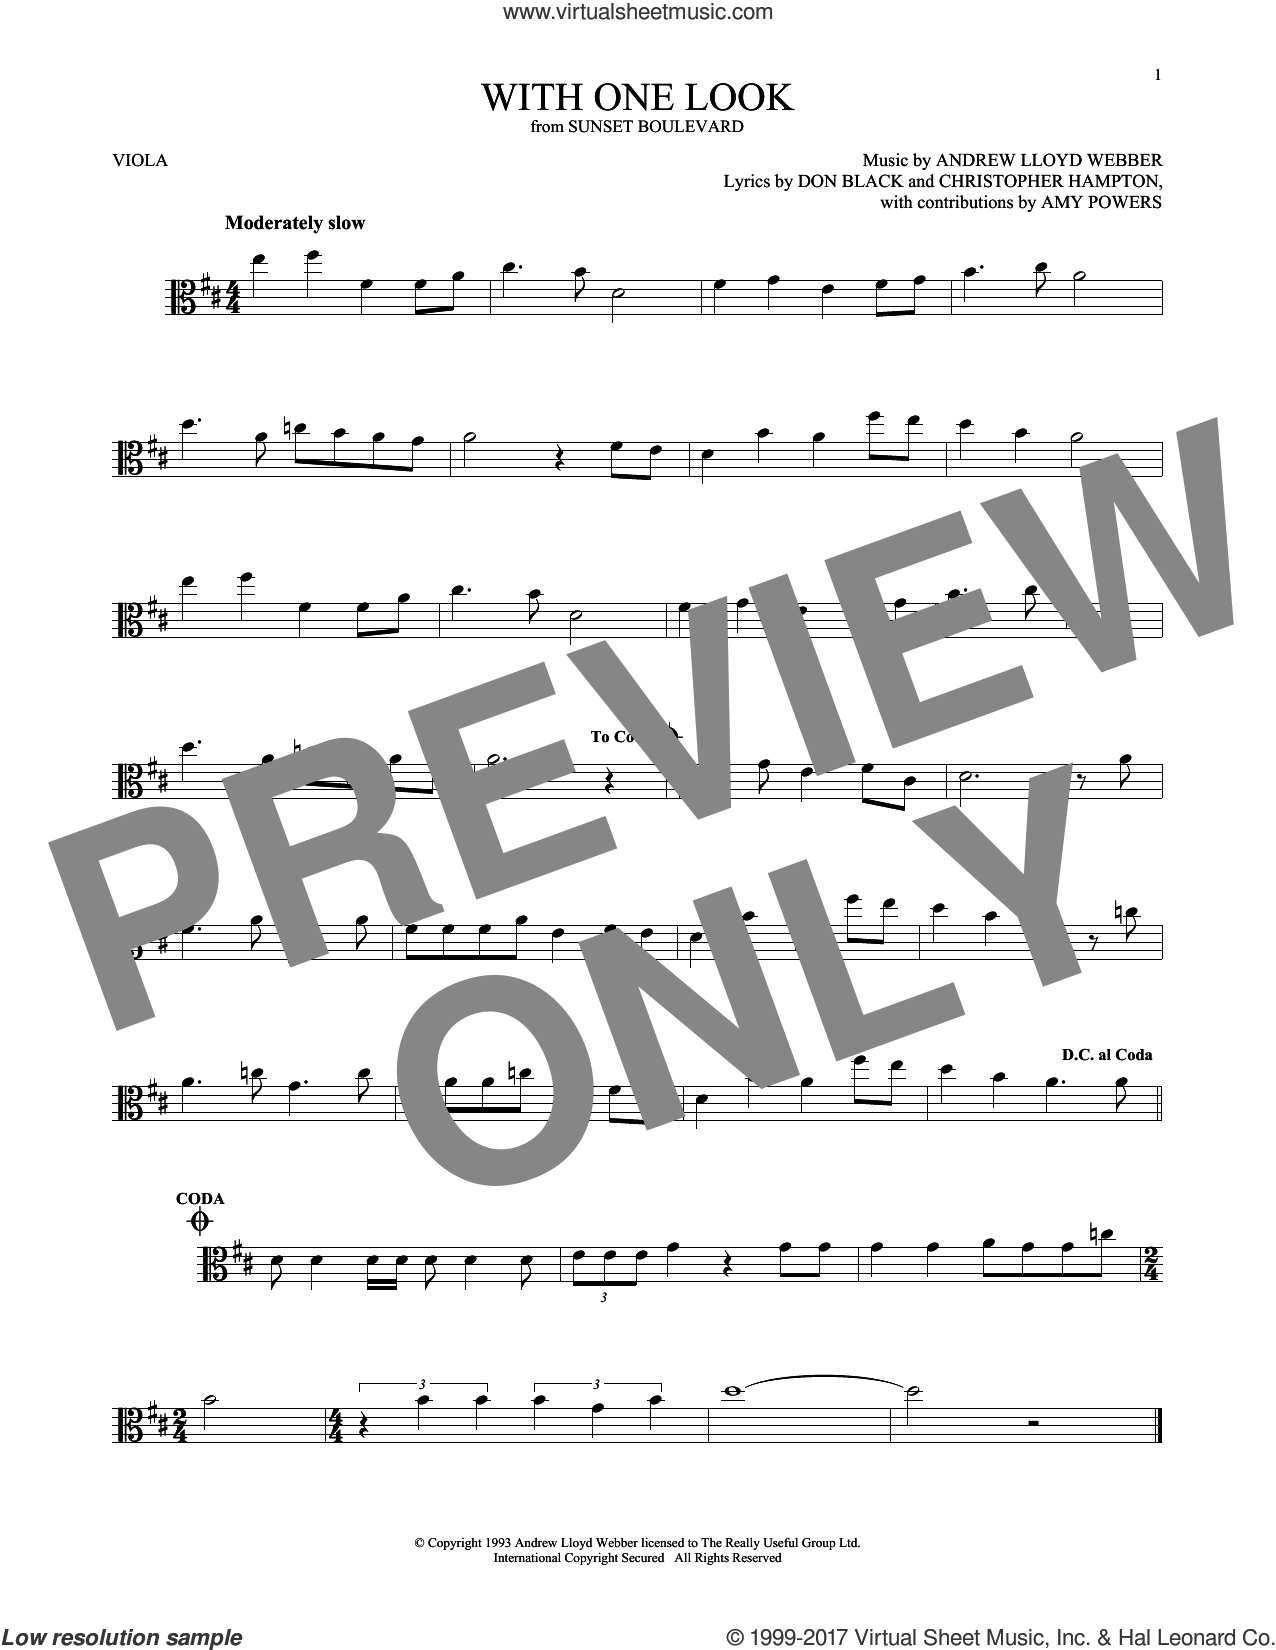 With One Look sheet music for viola solo by Andrew Lloyd Webber, Christopher Hampton and Don Black, intermediate skill level